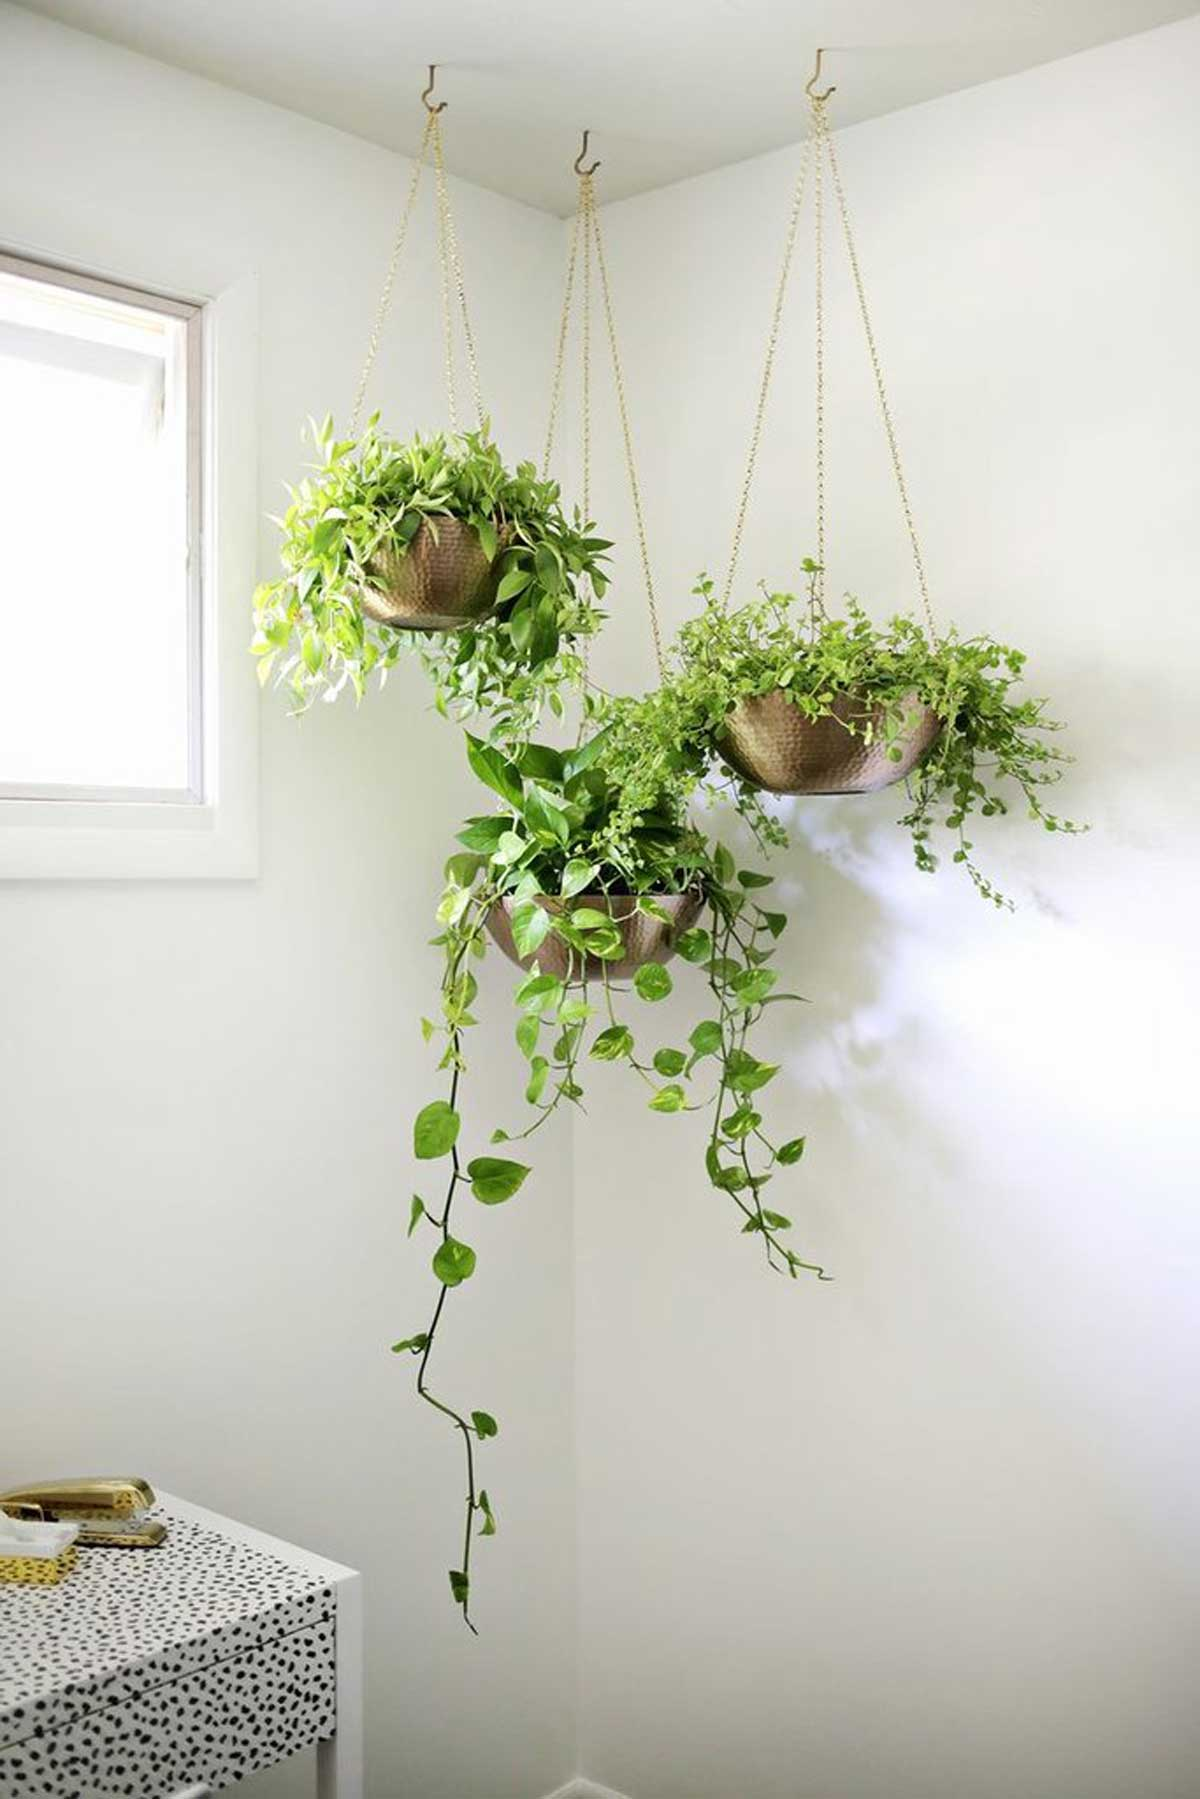 Indoor plants a complete guide on the best indoor plants - Indoor plant decor ideas ...